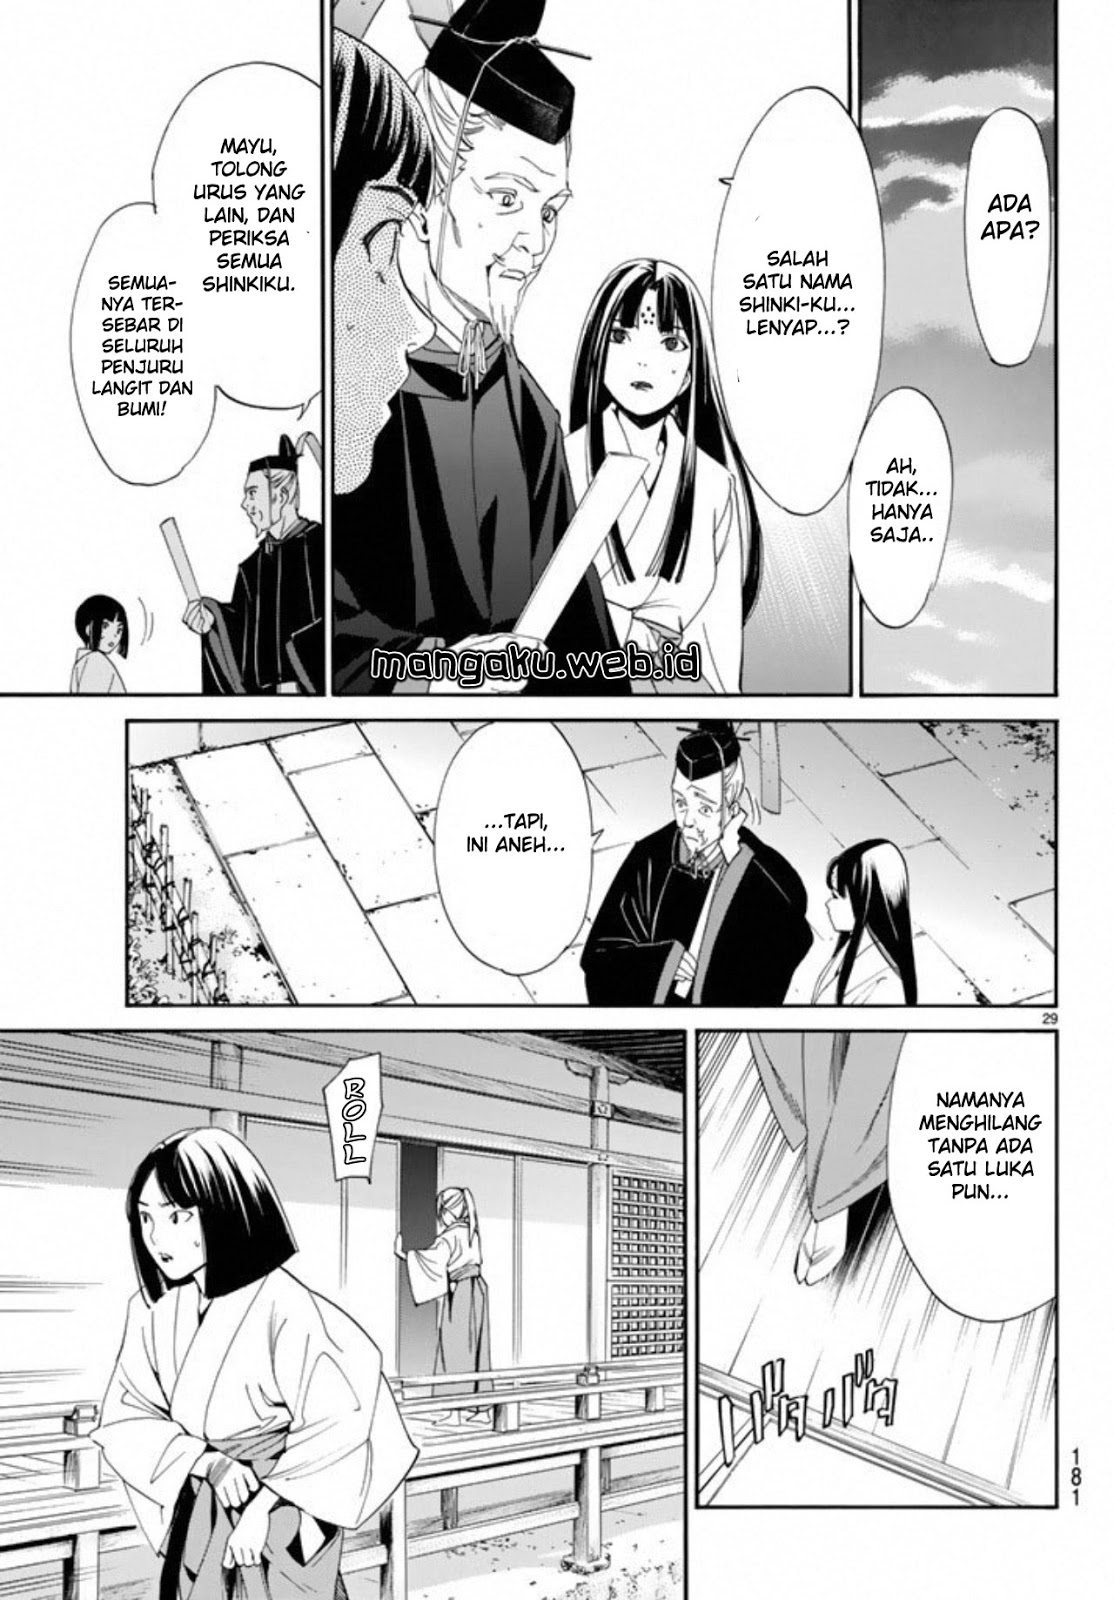 Noragami Chapter 55-28